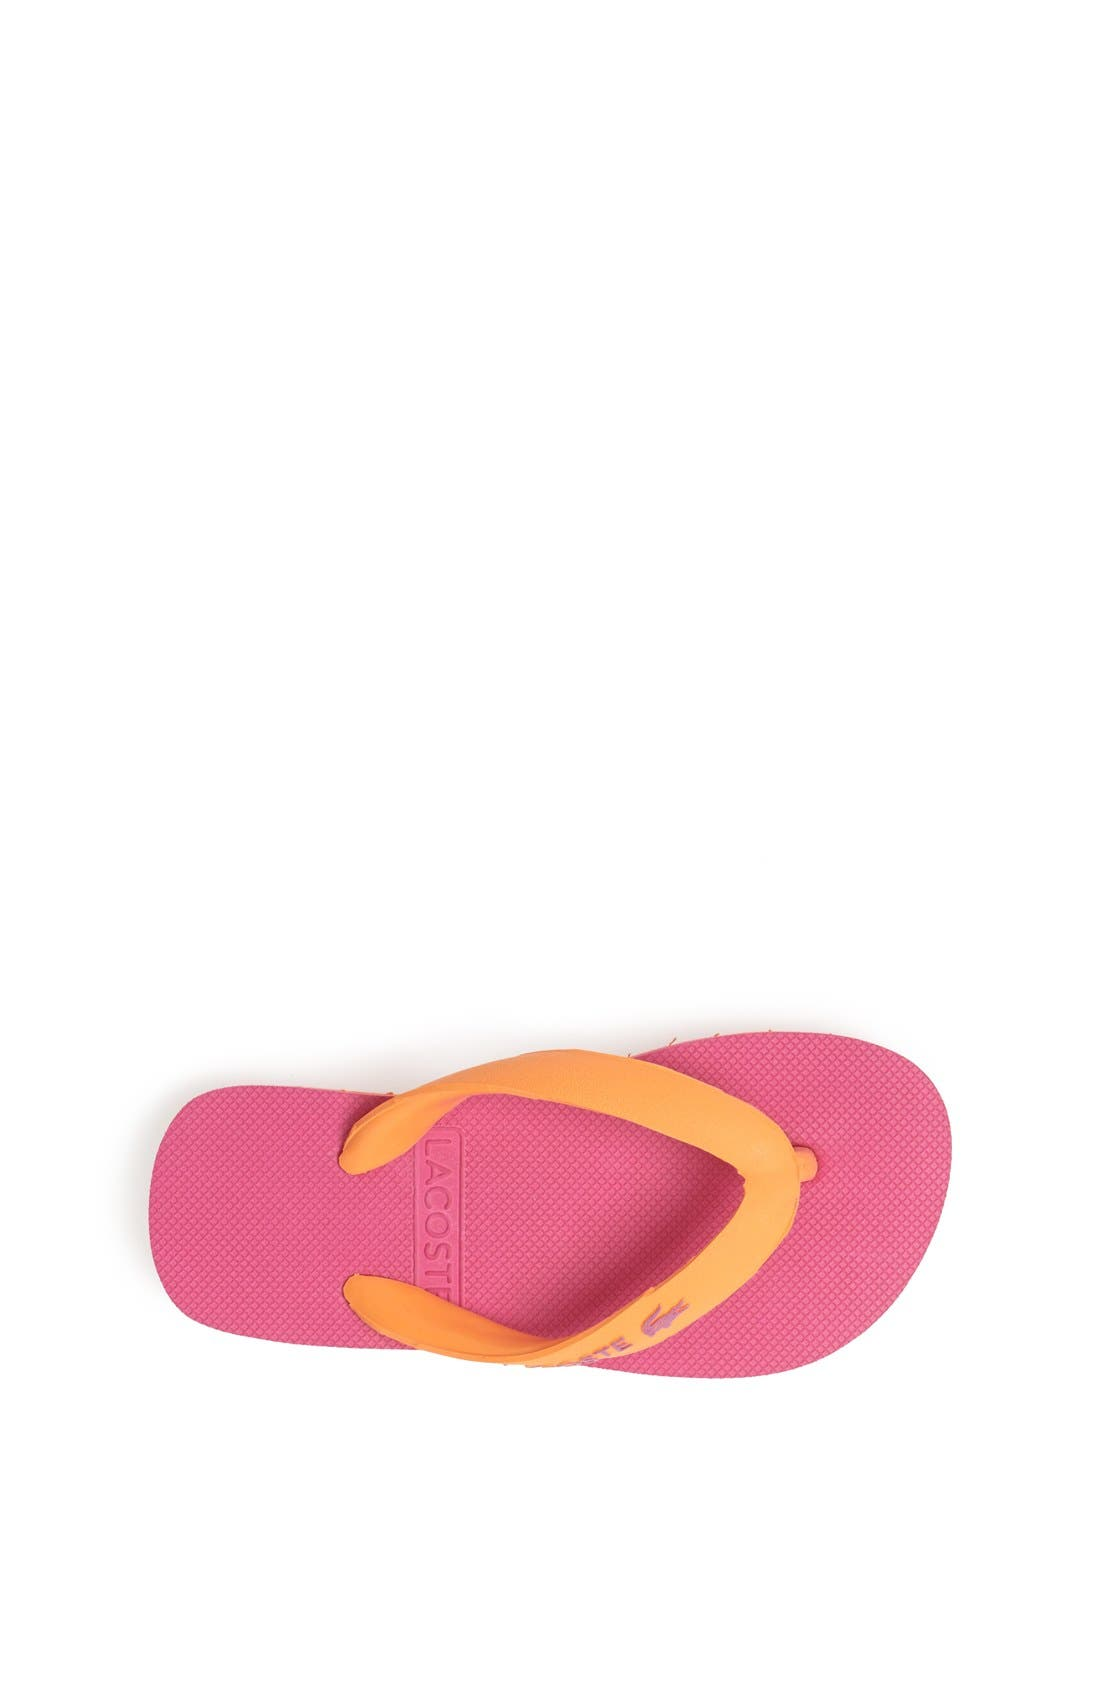 Alternate Image 3  - Lacoste 'Nosara' Flip Flop (Toddler & Little Kid)